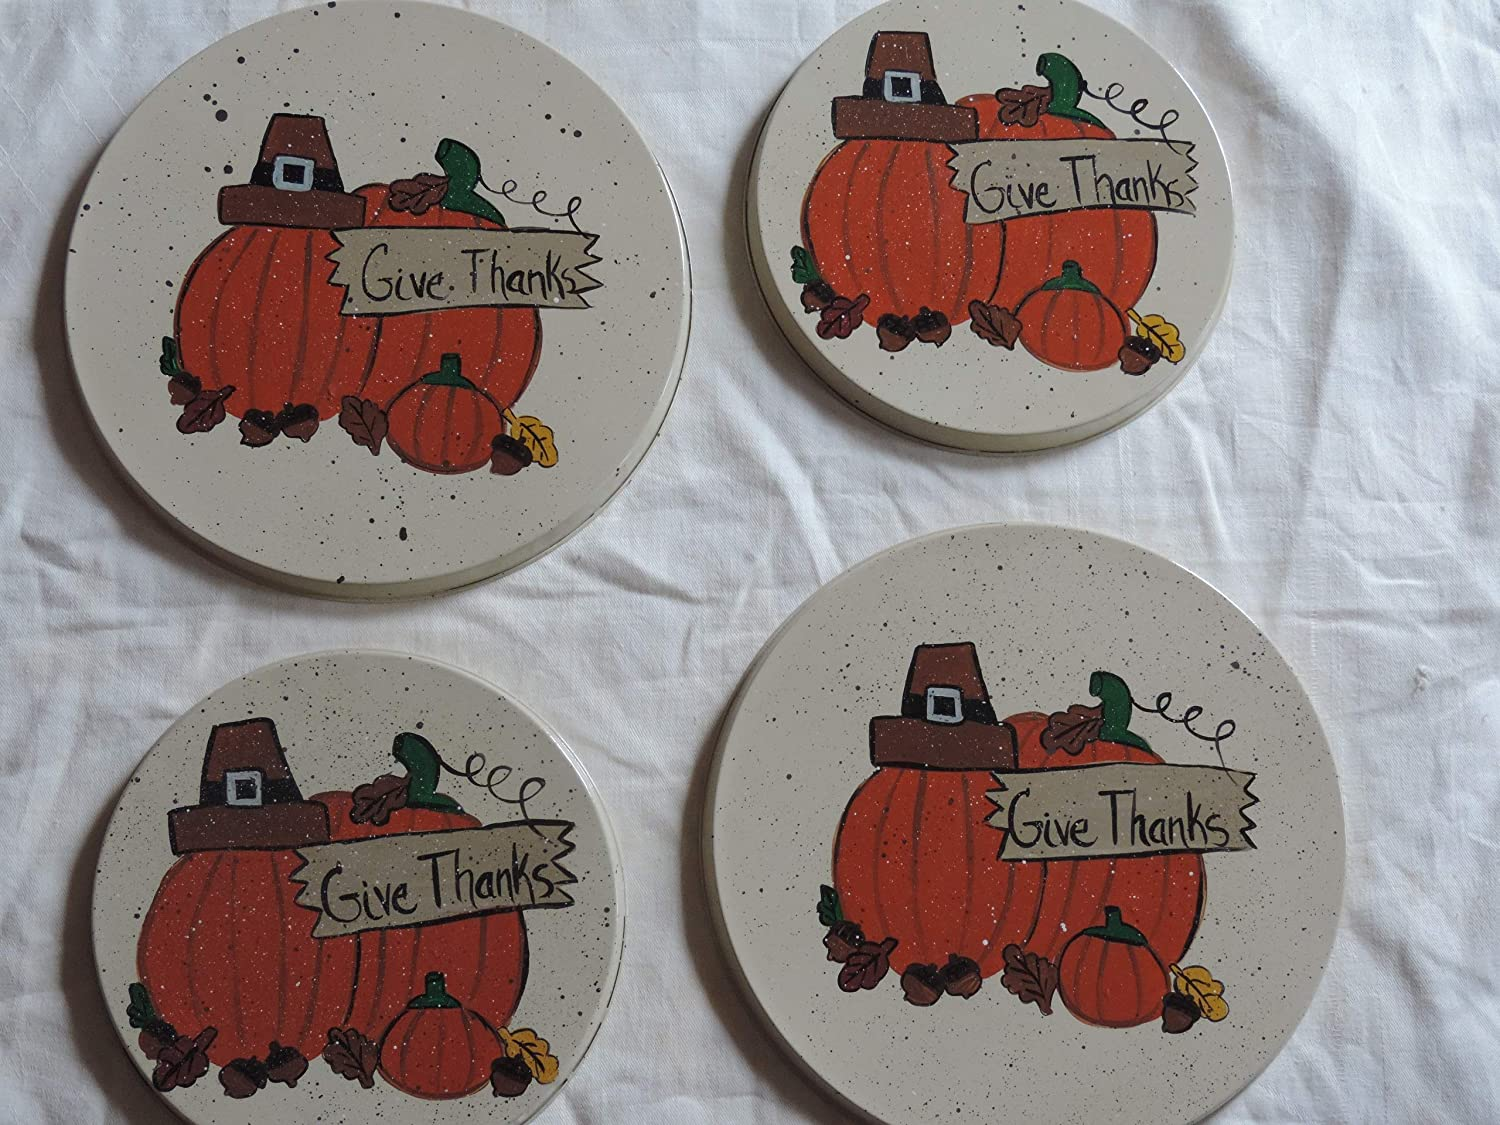 Thanksgiving pumpkin burner covers PERSONALIZED FREE!!